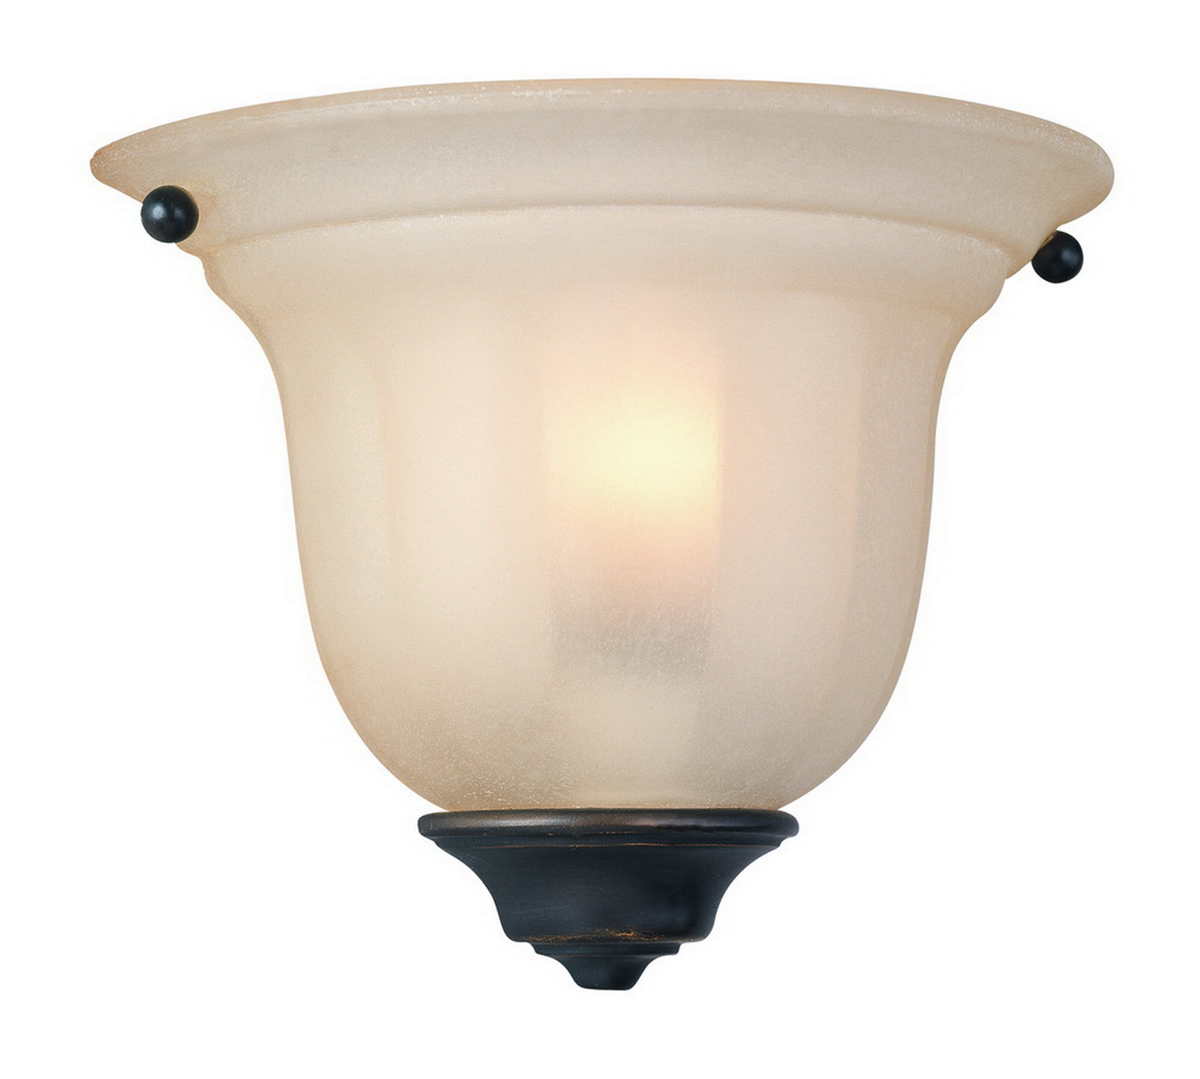 Dolan Design (225-78) Richland Single Light Wall Sconce In